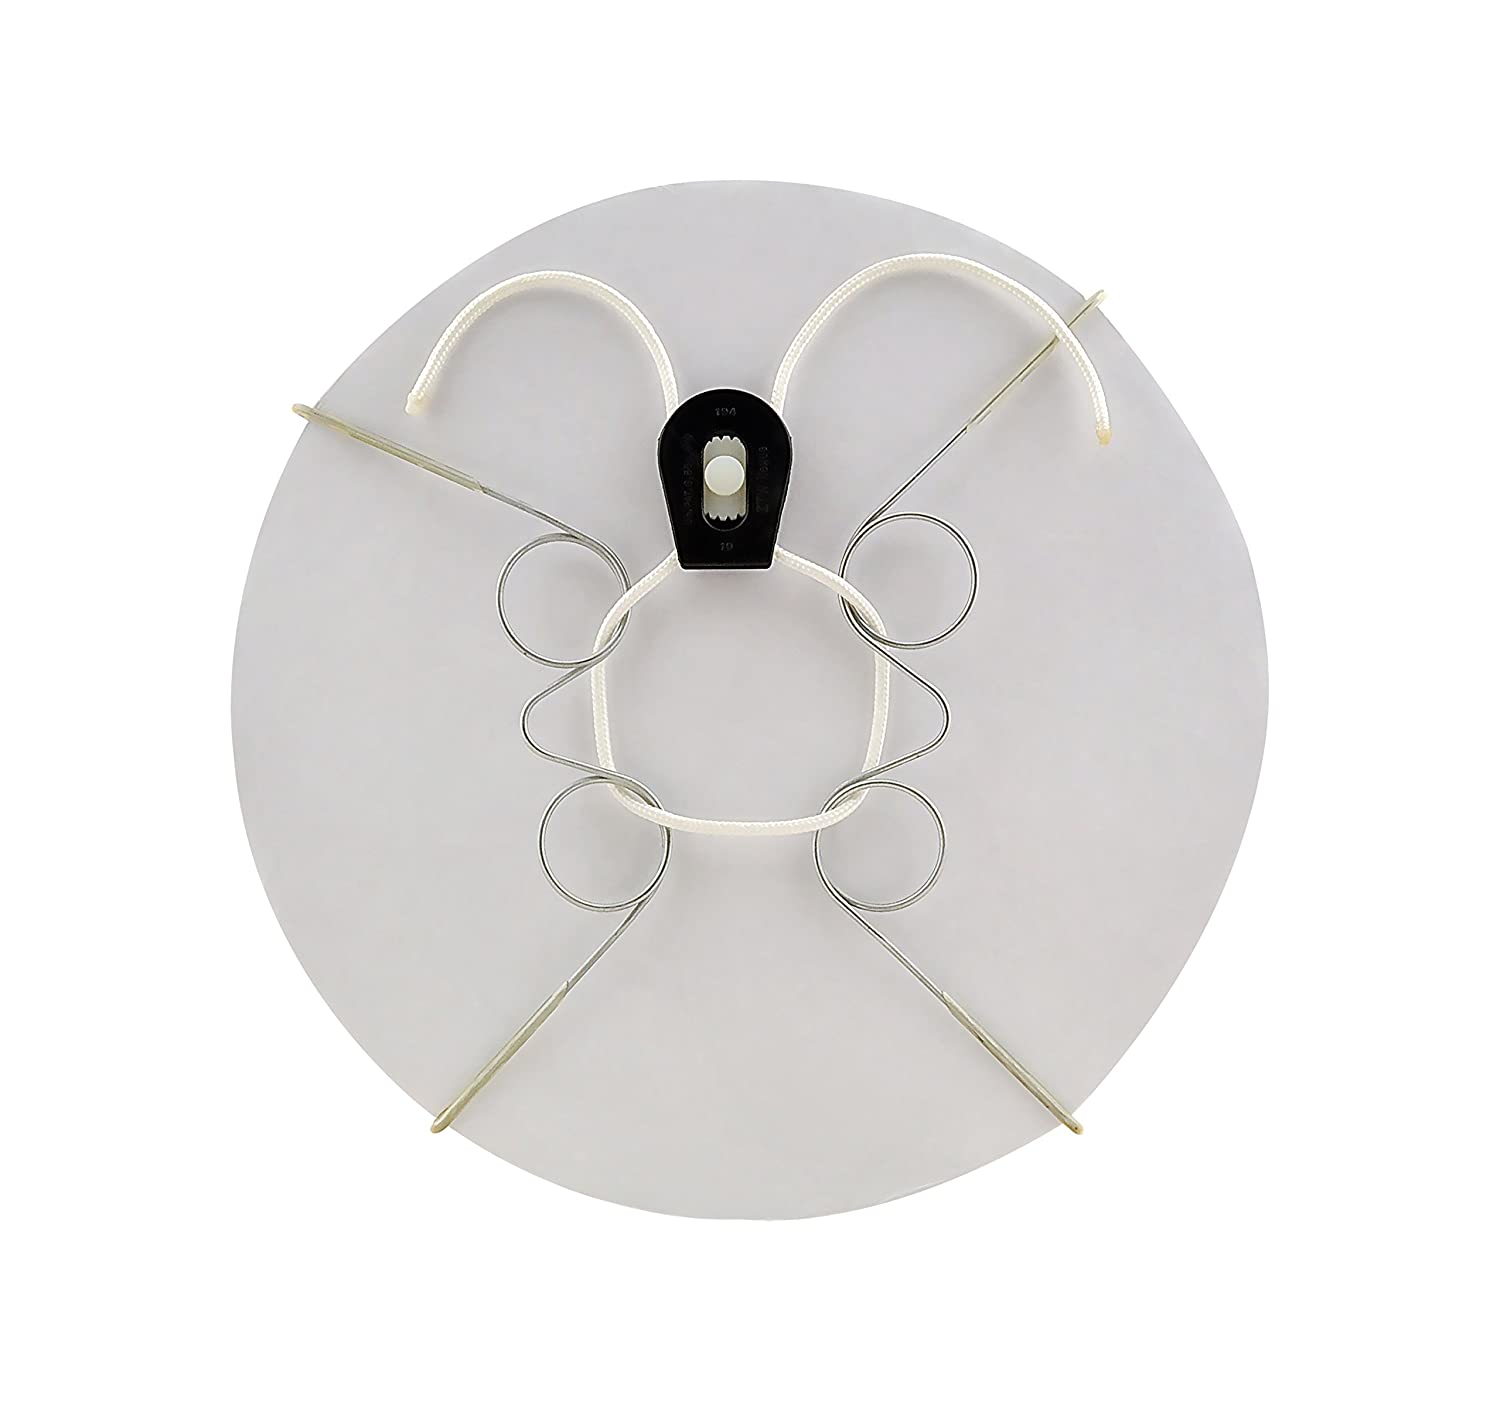 Small Adjustable Plate Holder By Display Buddie Decorative Plate Wall Hanger Plate Hangers For The Wall Vase Hanger Bowl Hanger And More Hang